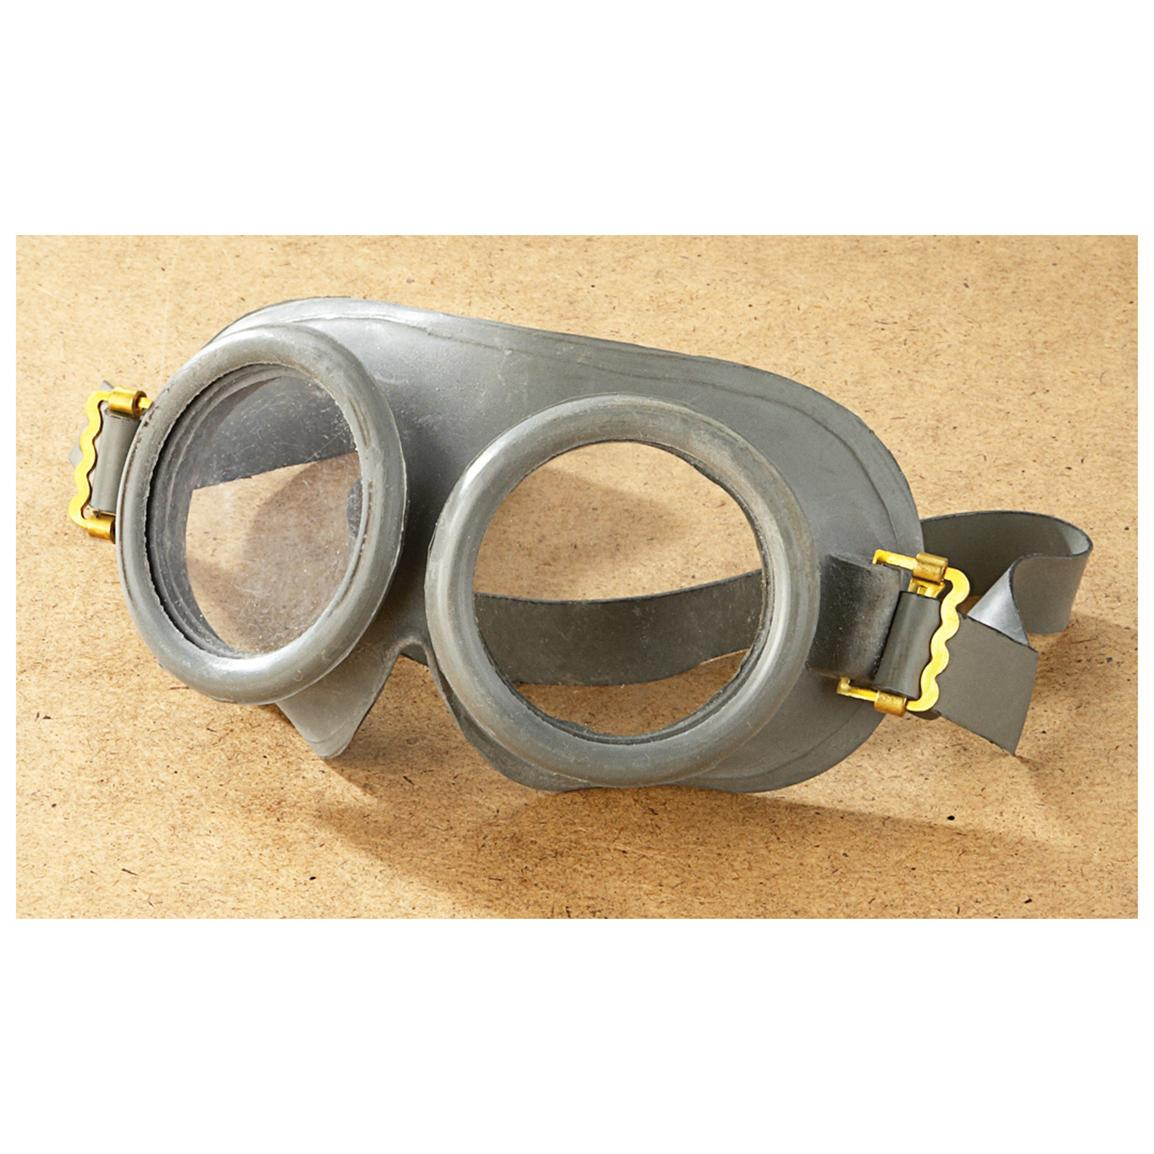 NATO Military Surplus Goggles, 2 Pack, New